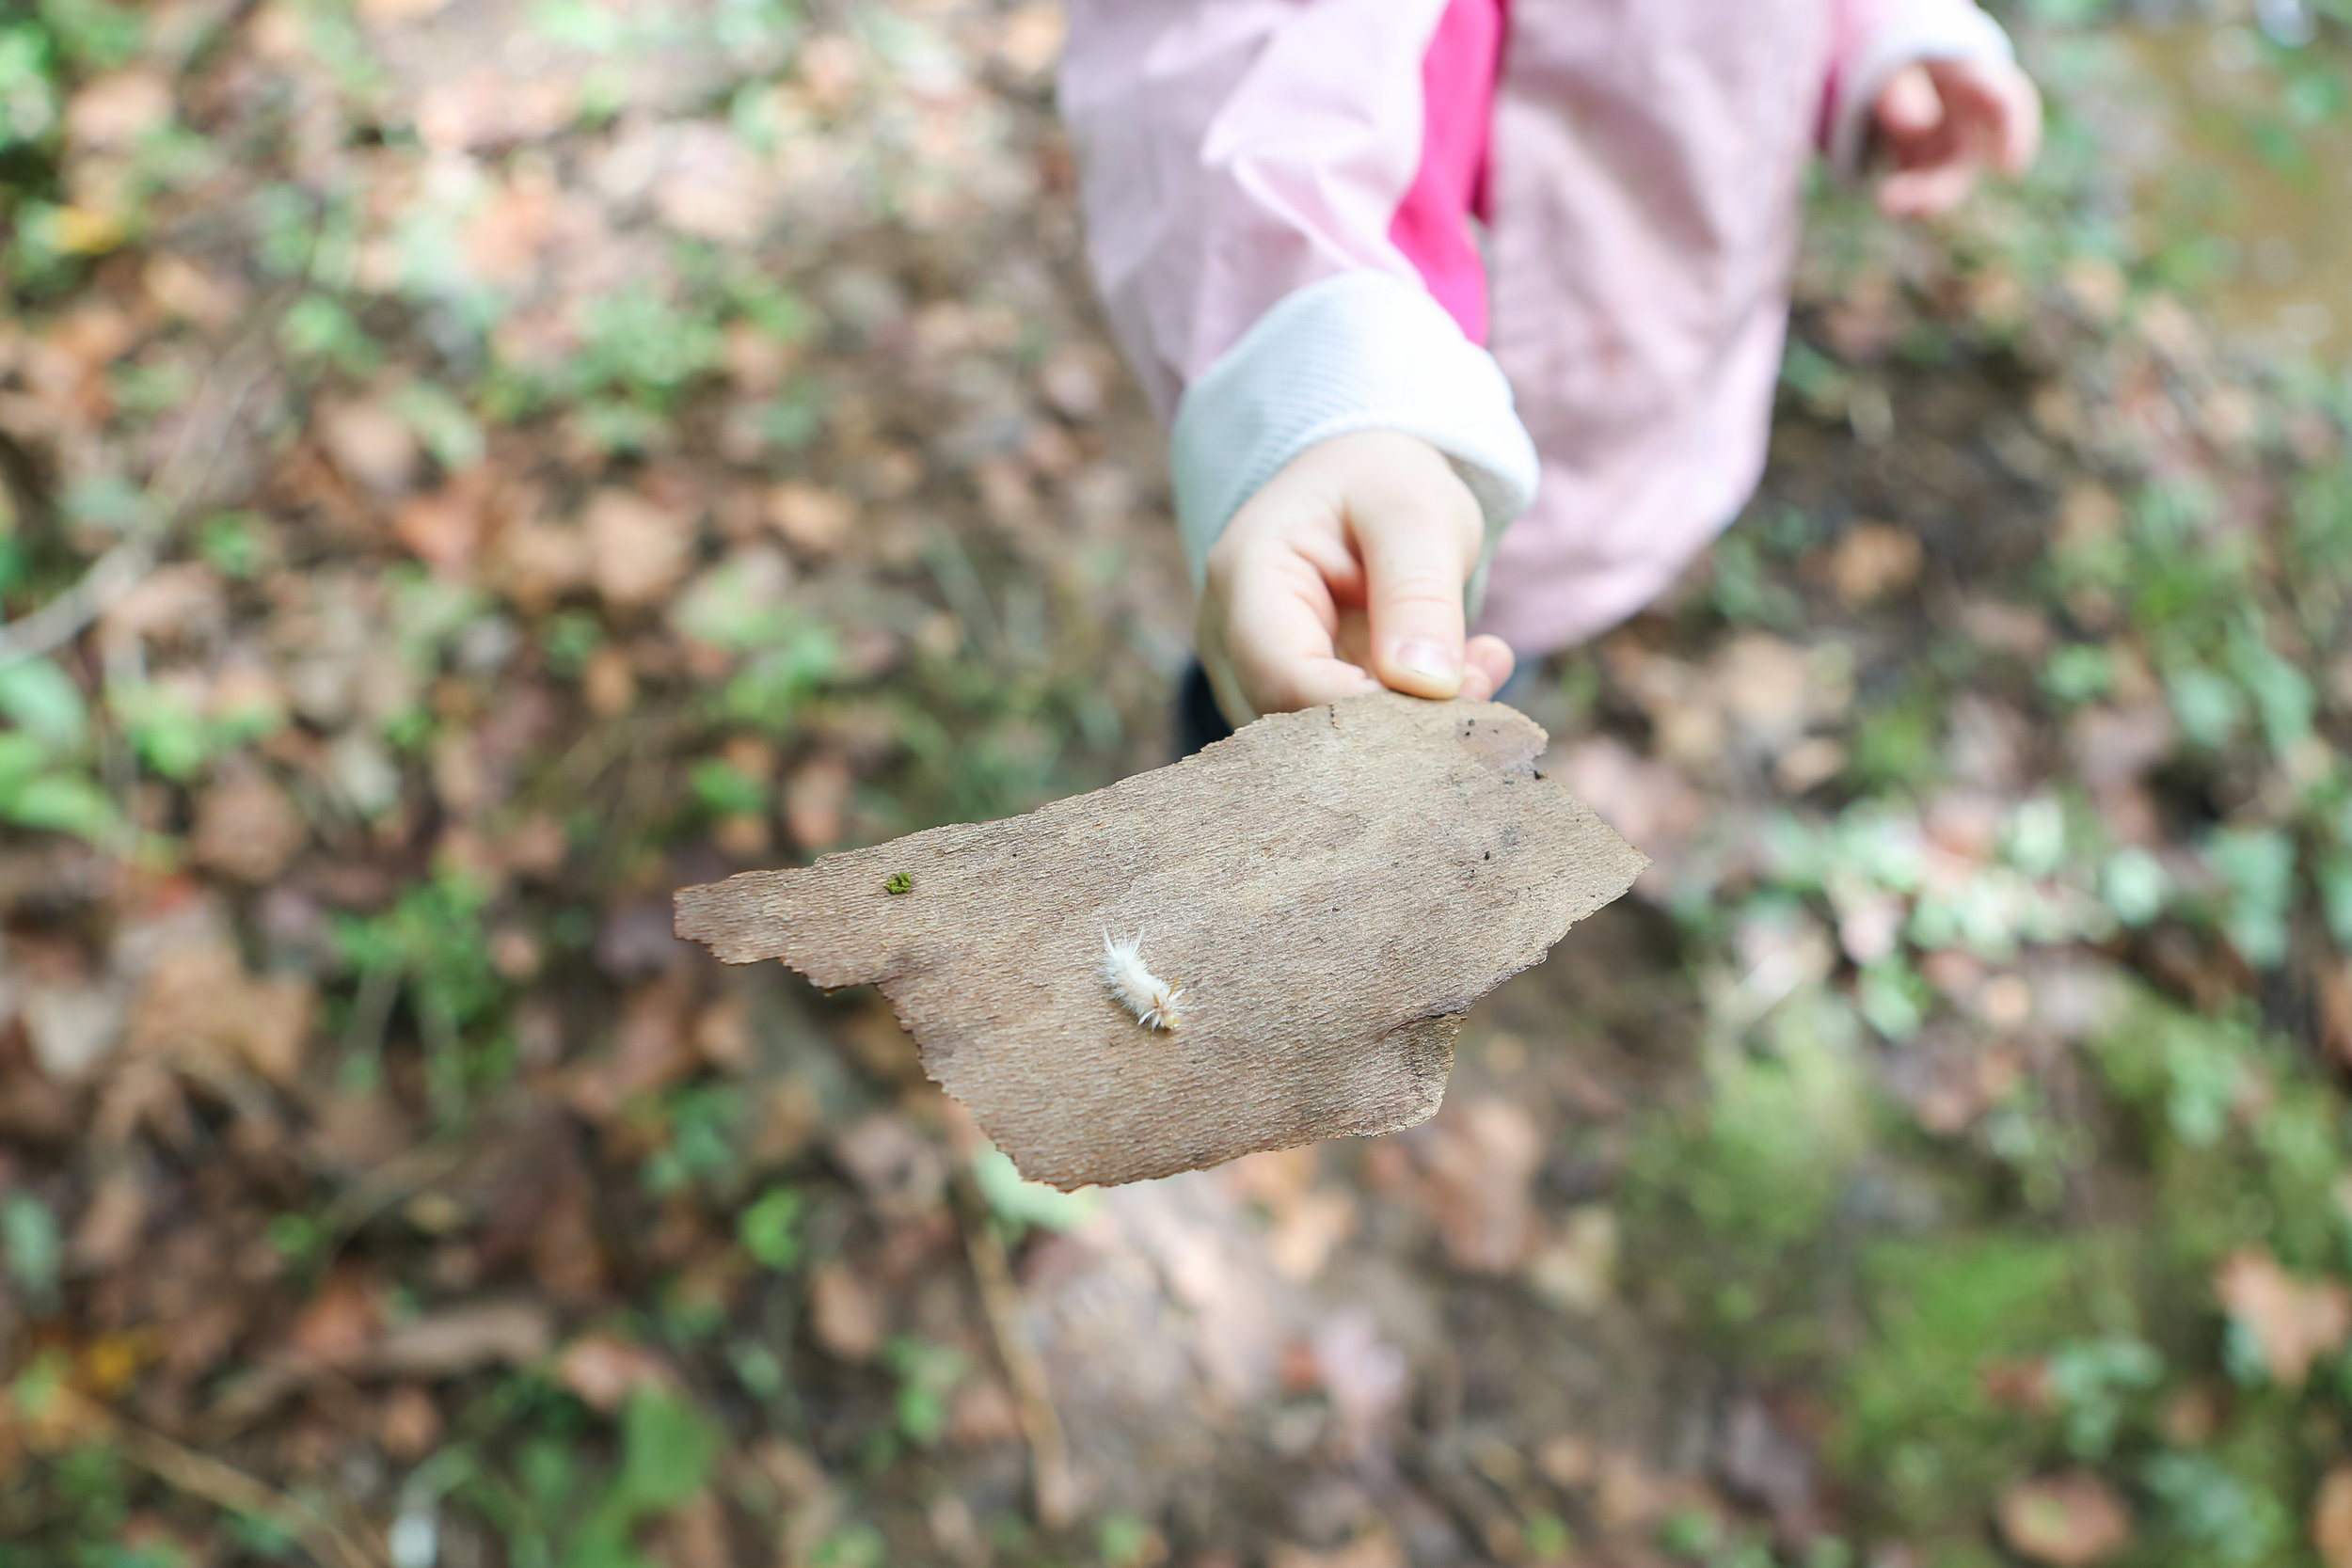 Forest School Finals-Forest School Finals-0102.jpg